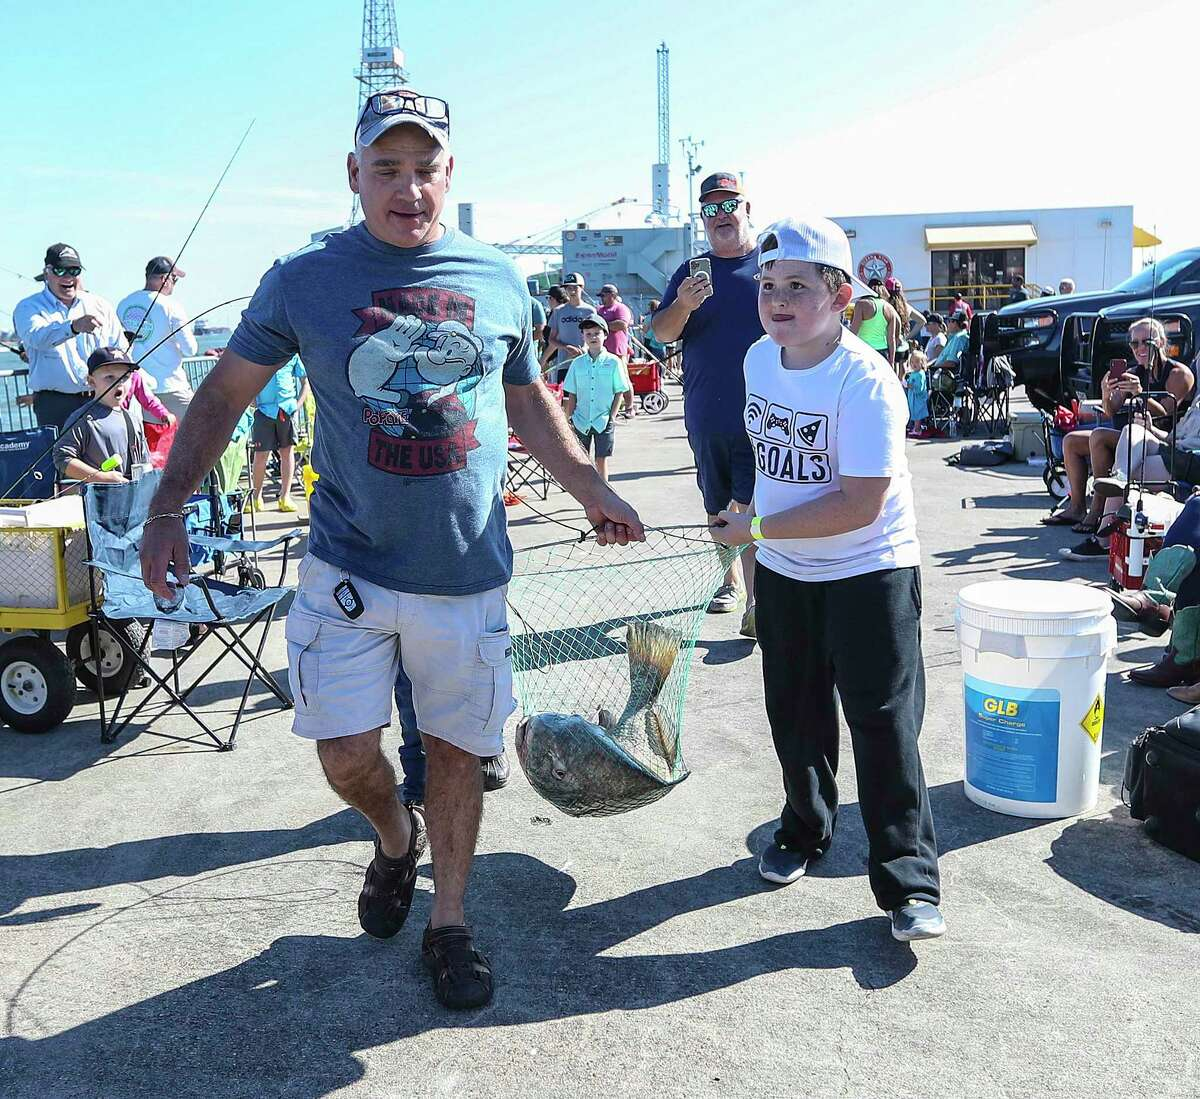 Teagan Taylor, 8, and his stepfather, Paul Hickman, carry a 32-pound black drum during the Cast Away Rods Guppy Cup KidFish in Galveston on Saturday. Teagan was a winner in his age category for the fish, which was weighed and released.